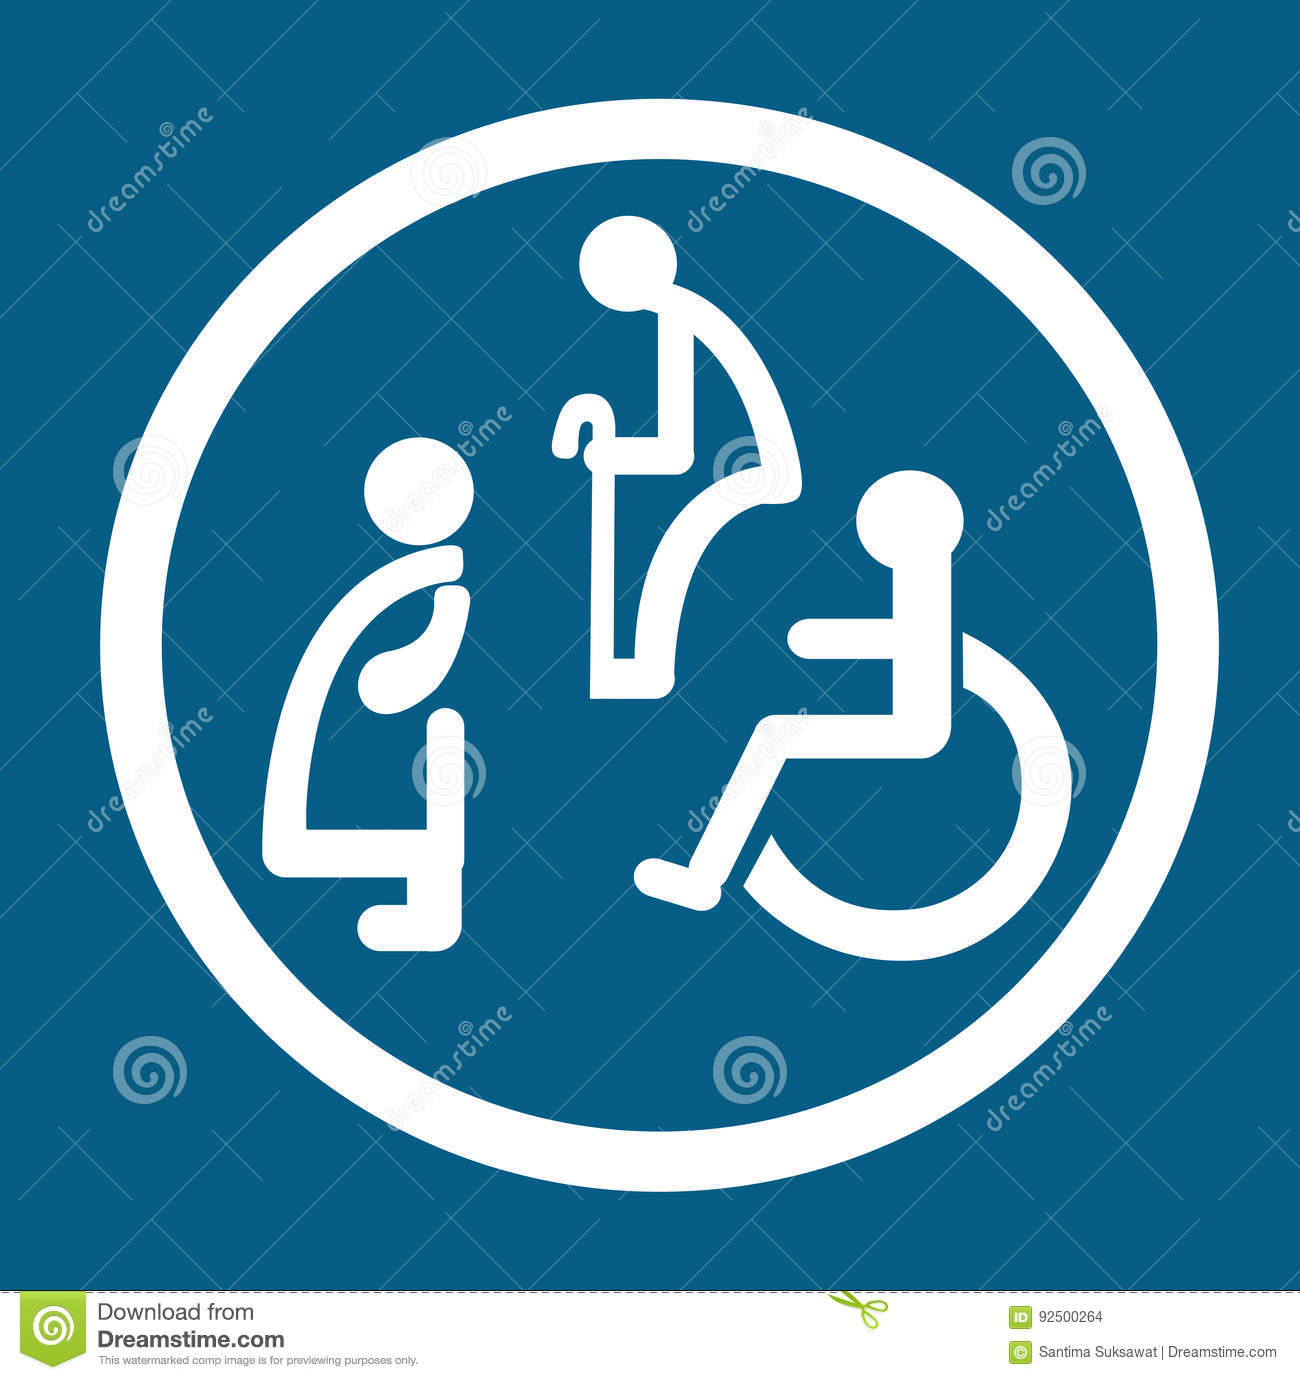 Bathroom For Persons With Disabilities  Disabled Toilet Sign Stock Vector. Bathroom For Persons With Disabilities  Disabled Toilet Sign Stock